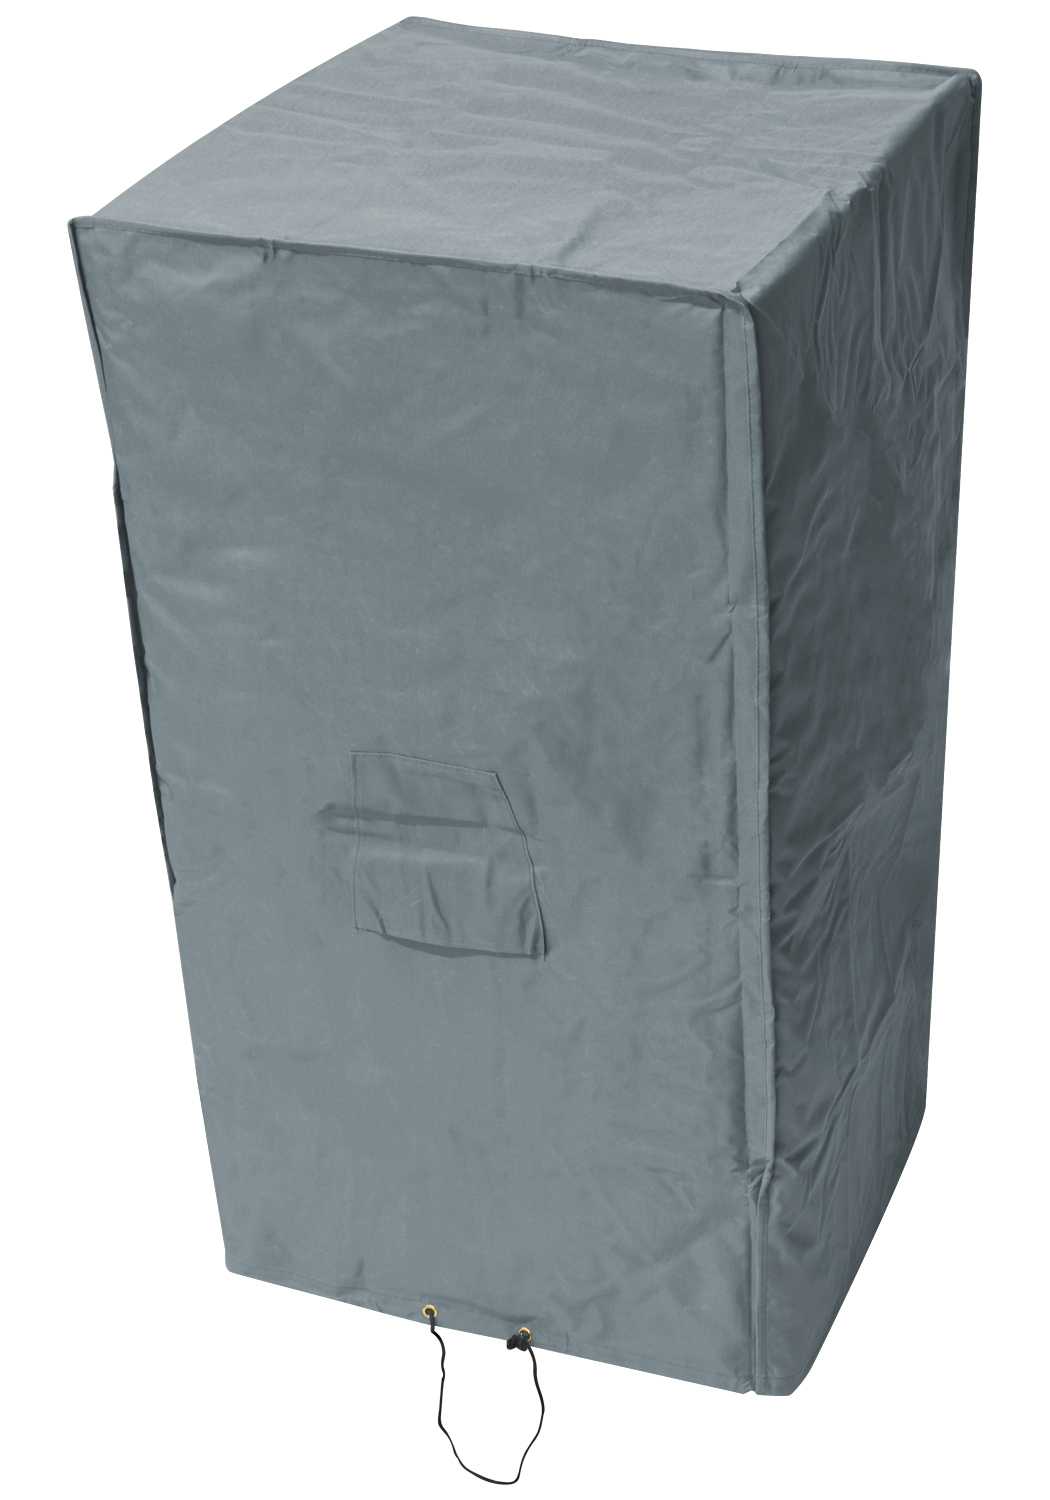 Oxbridge stacking chair cover grey covers outdoor value for Oxbridge outdoor furniture covers